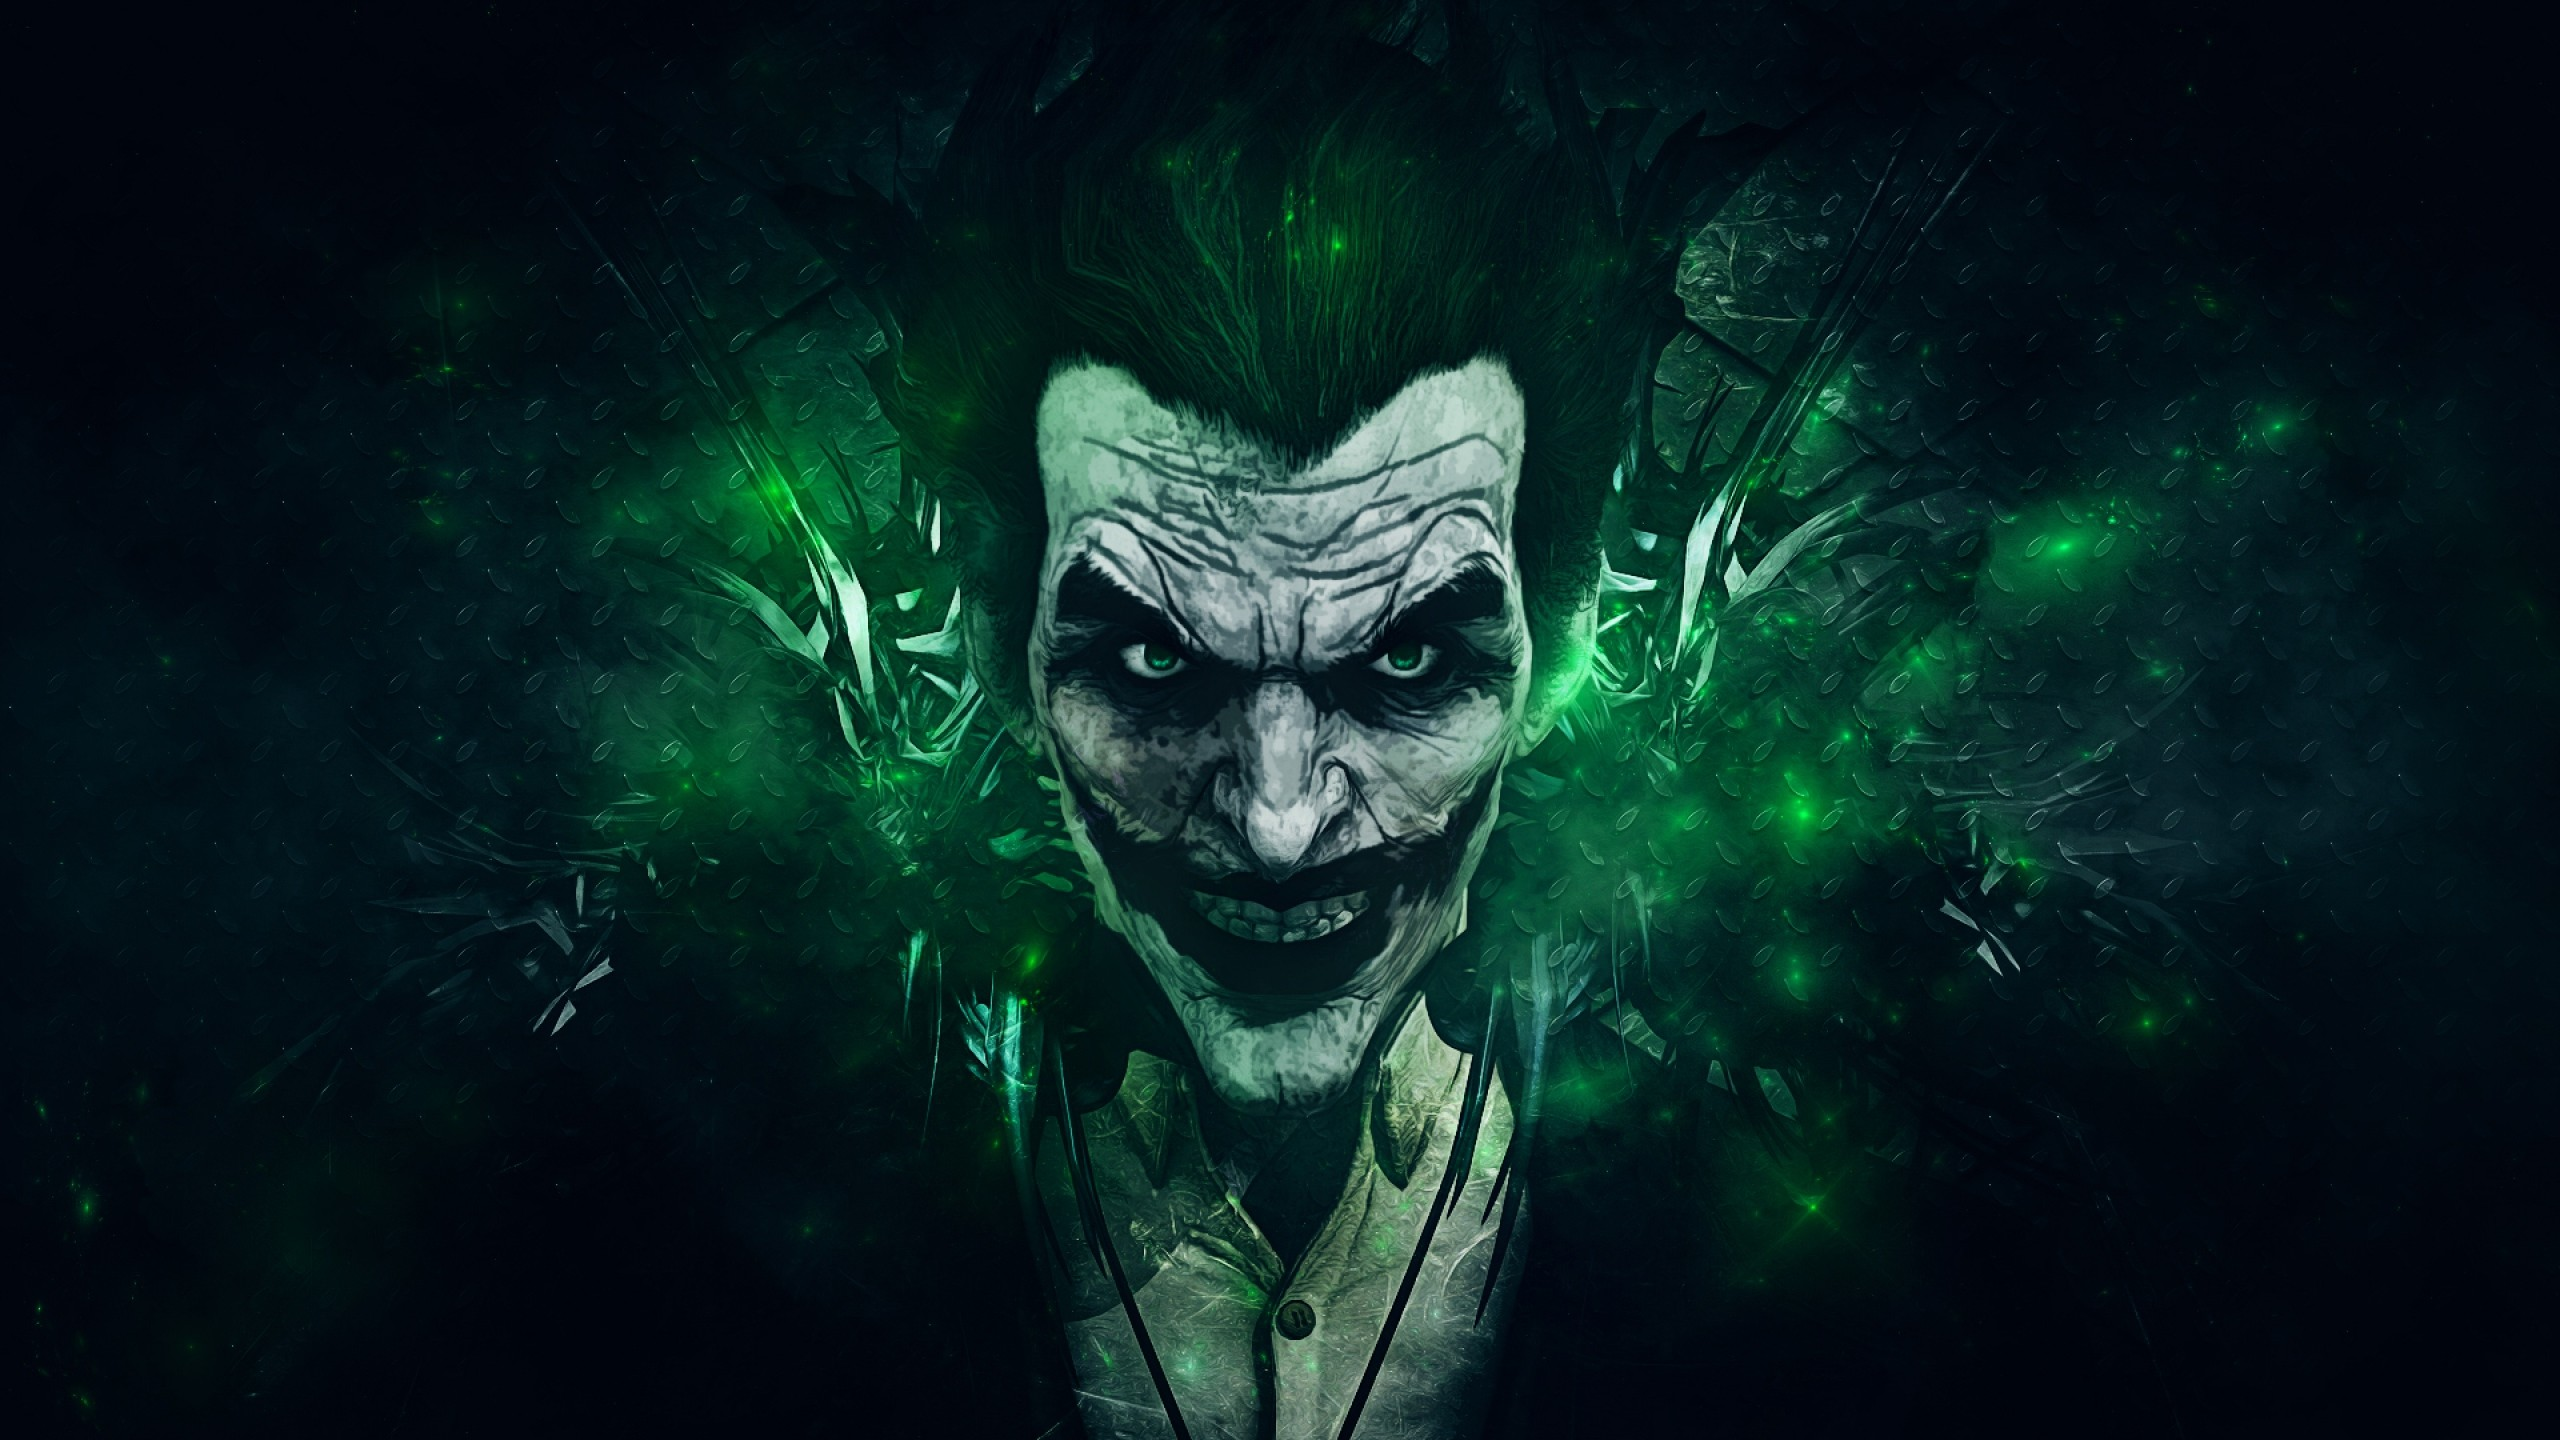 2560x1440  Wallpaper batman arkham origins, joker, games montreal,  rocksteady studios